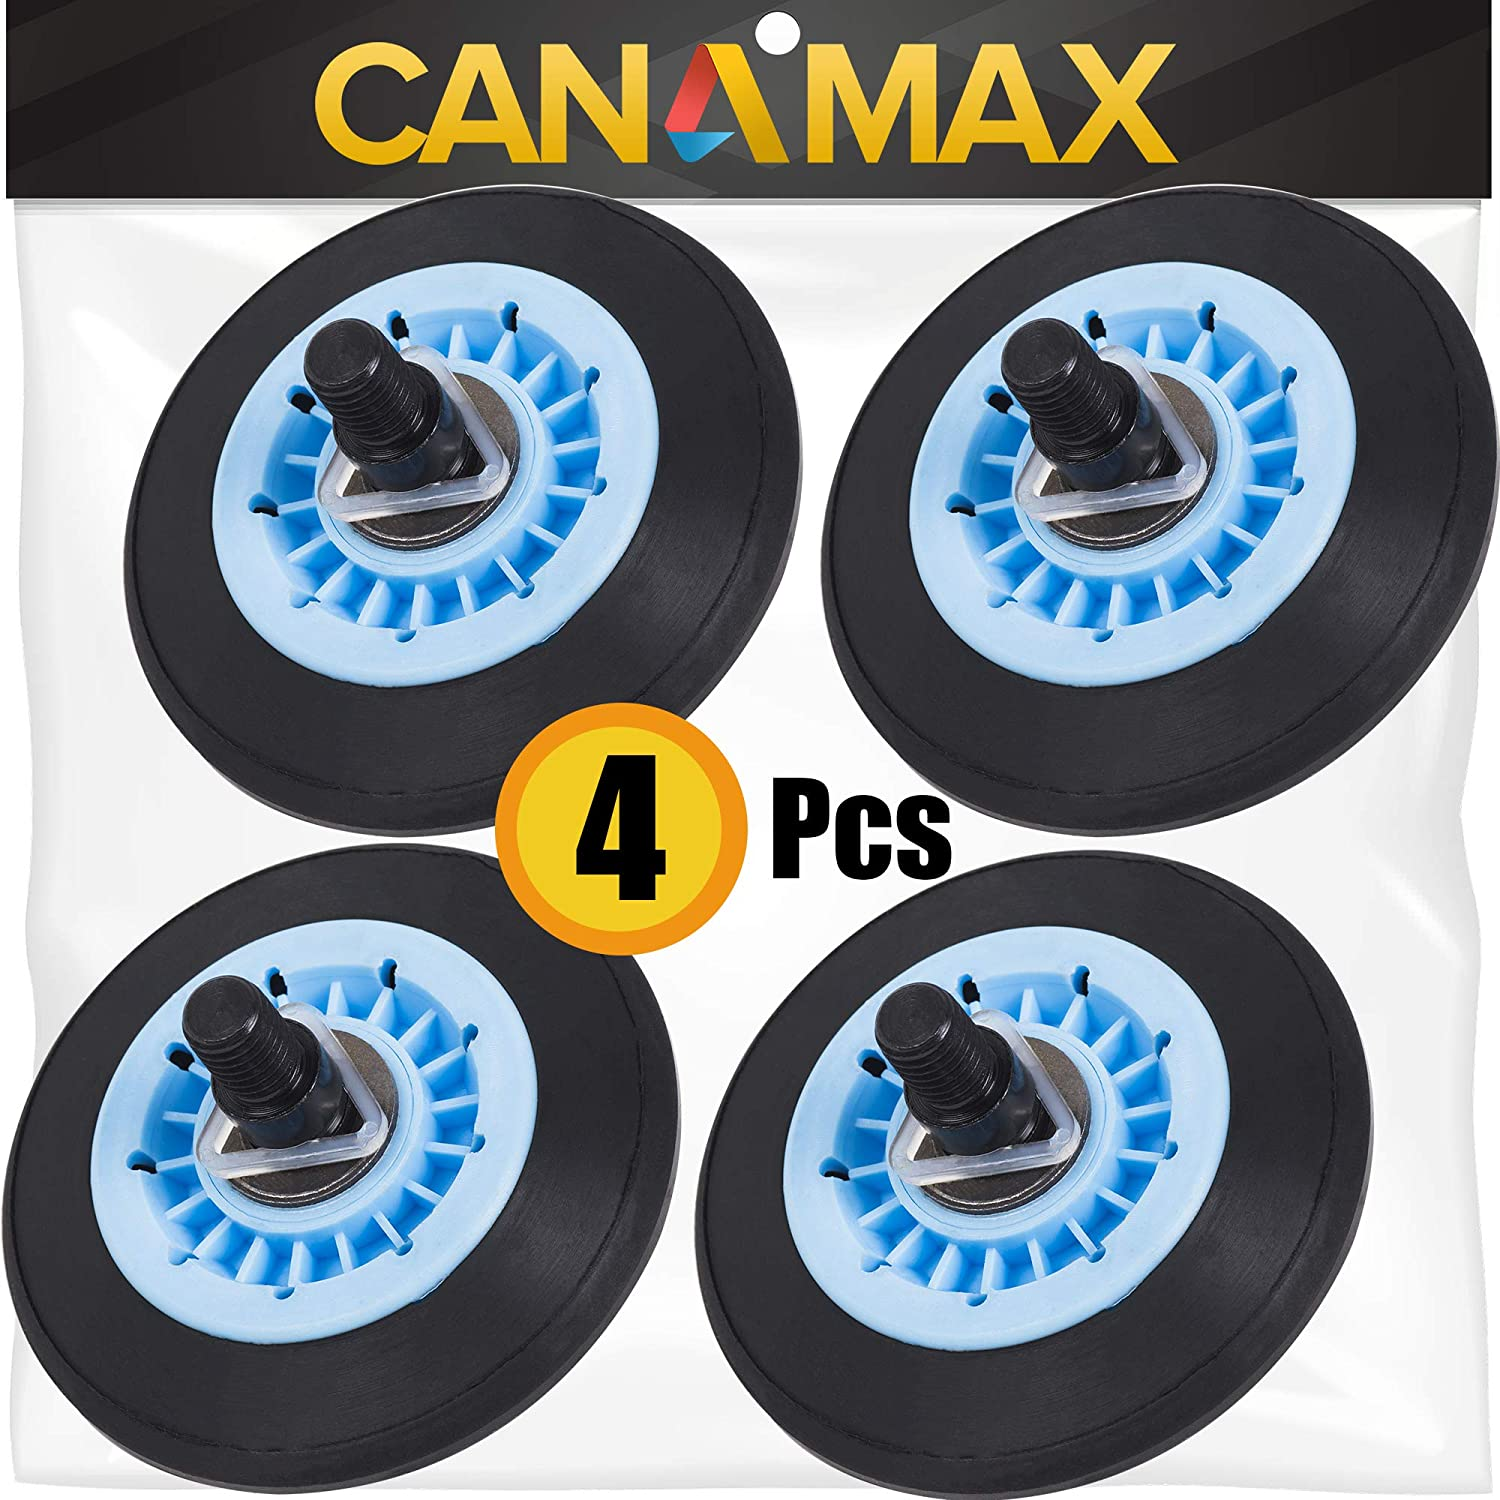 DC97-16782A Dryer Drum Roller Kit Premium Replacement Part by Canamax - Compatible with Samsung Dryers - Replaces DC97-07523A PS4221885 AP5325135 - PACK OF 4